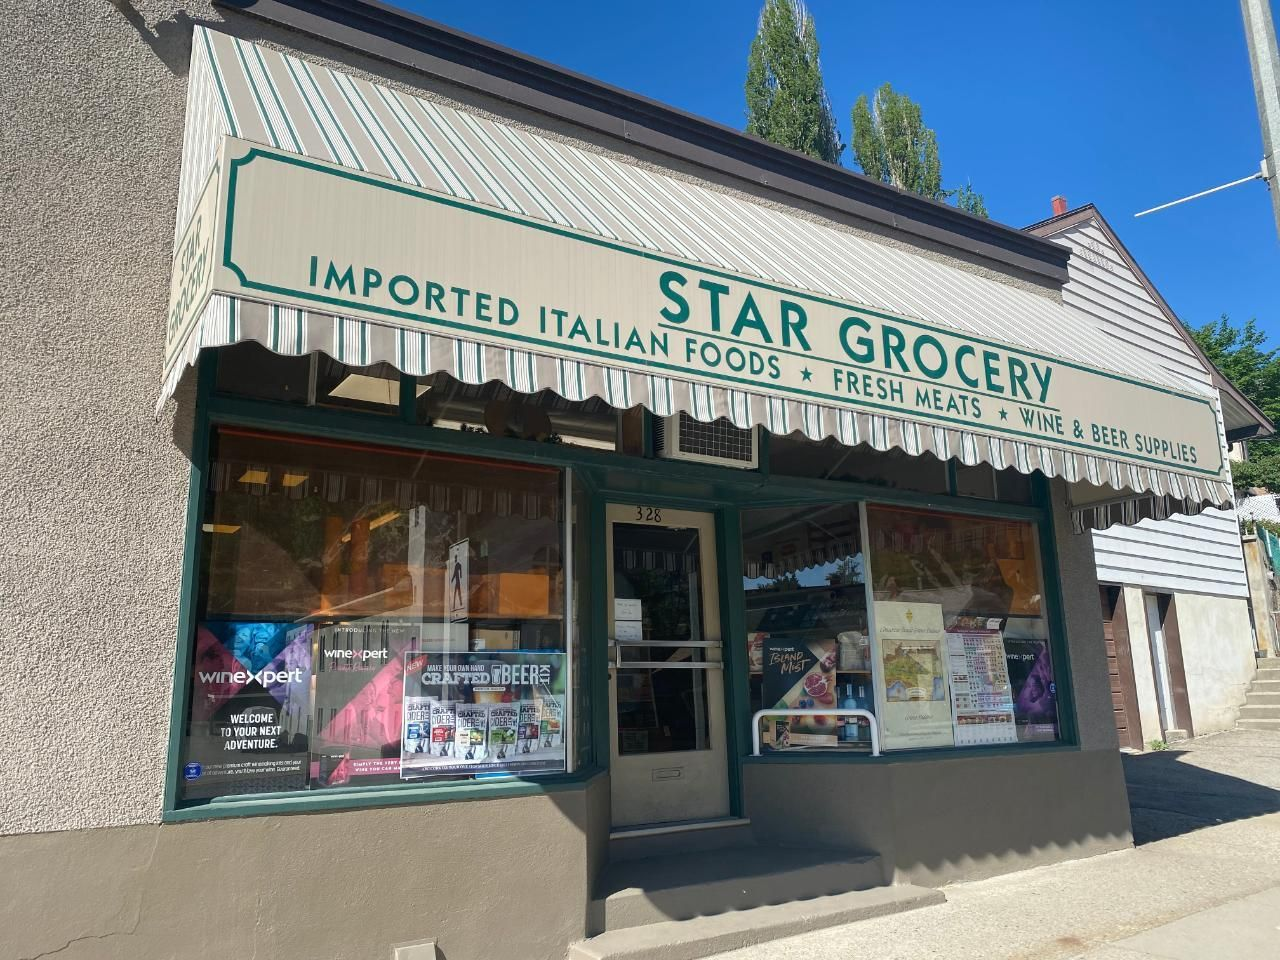 Main Photo: 420,426 ROSSLAND AVENUE in Trail: Retail for sale : MLS®# 2459289